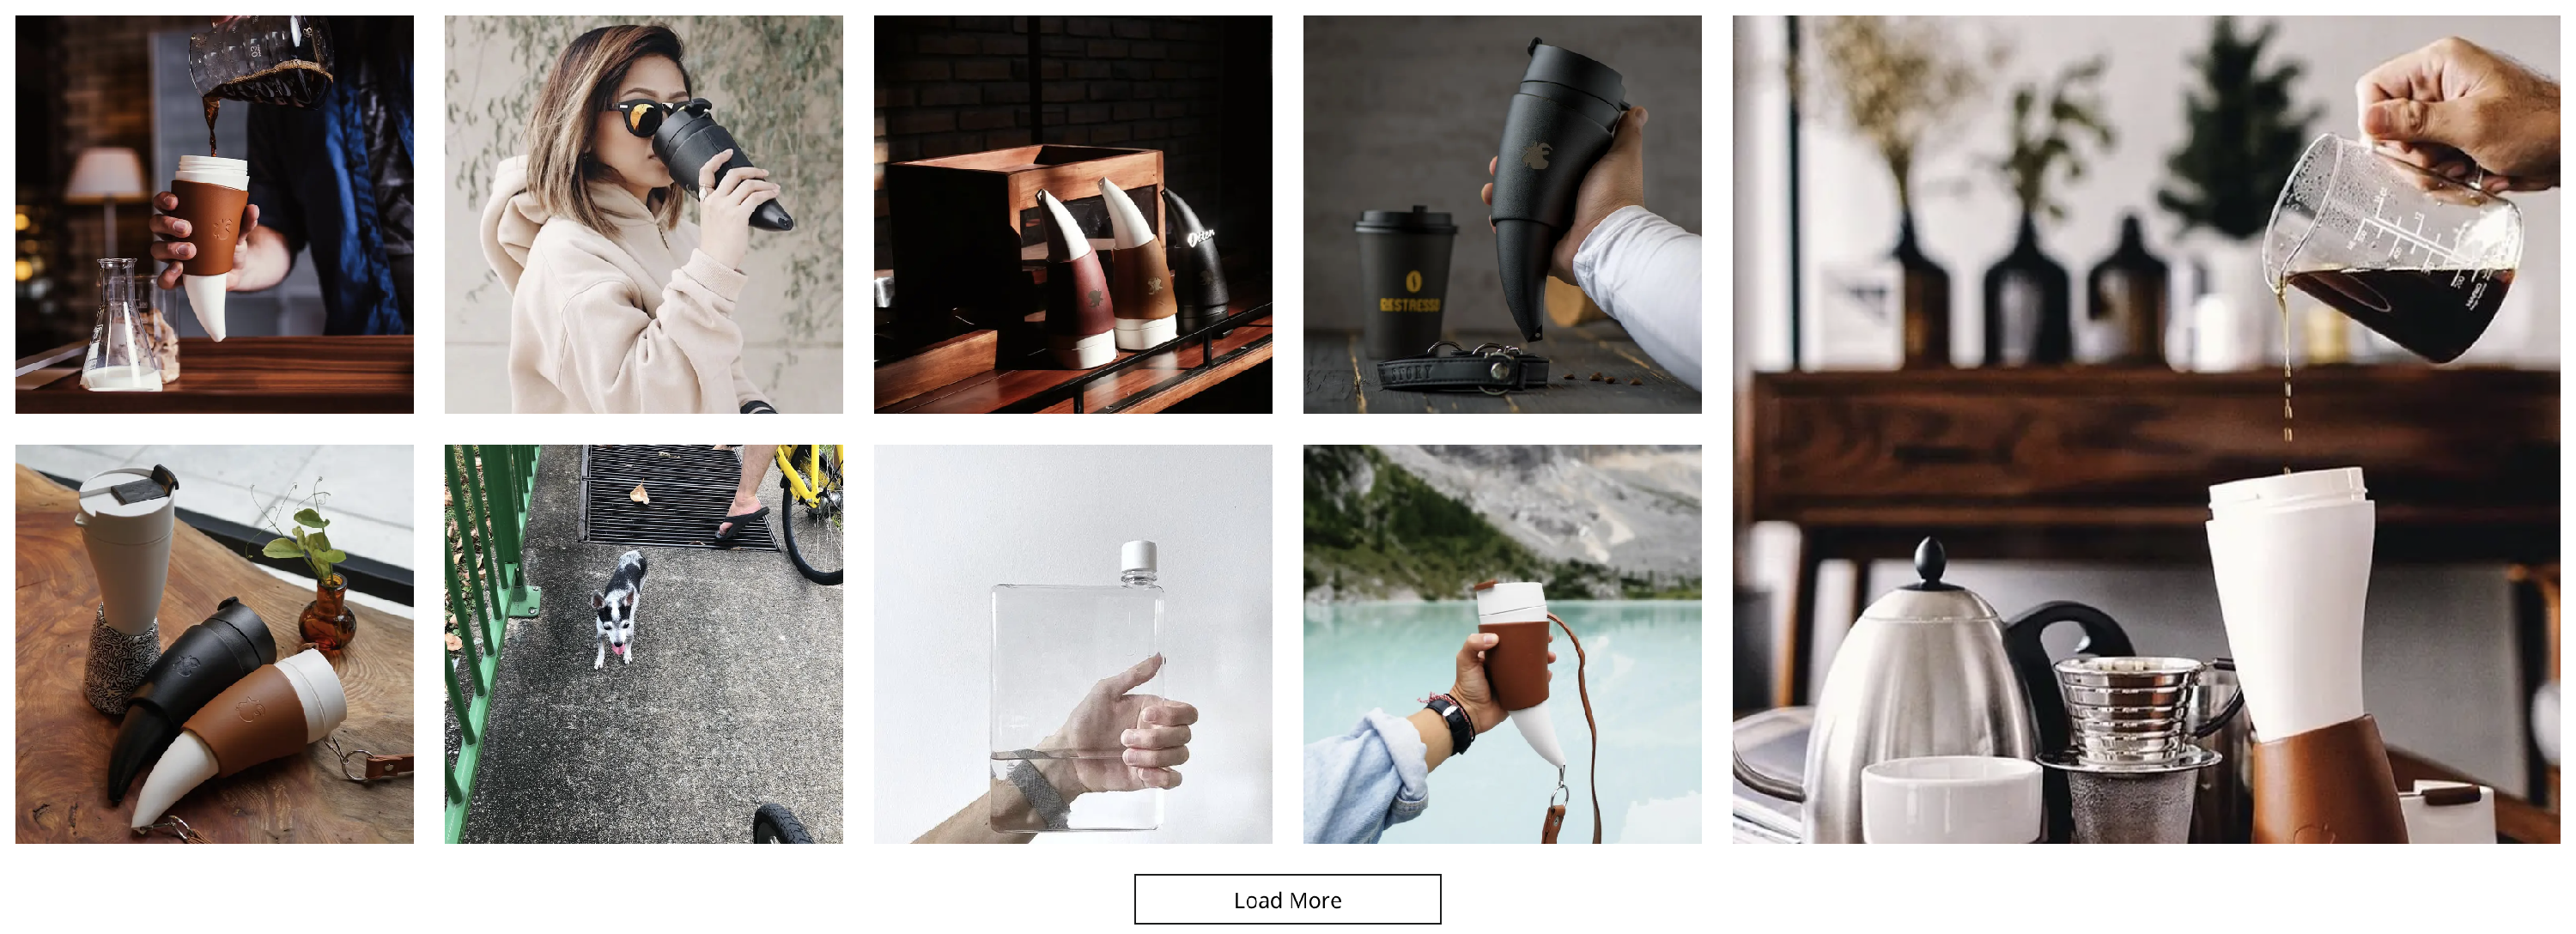 Visual Curation for Instagram Shoppable Gallery and UGC   Stamped ...